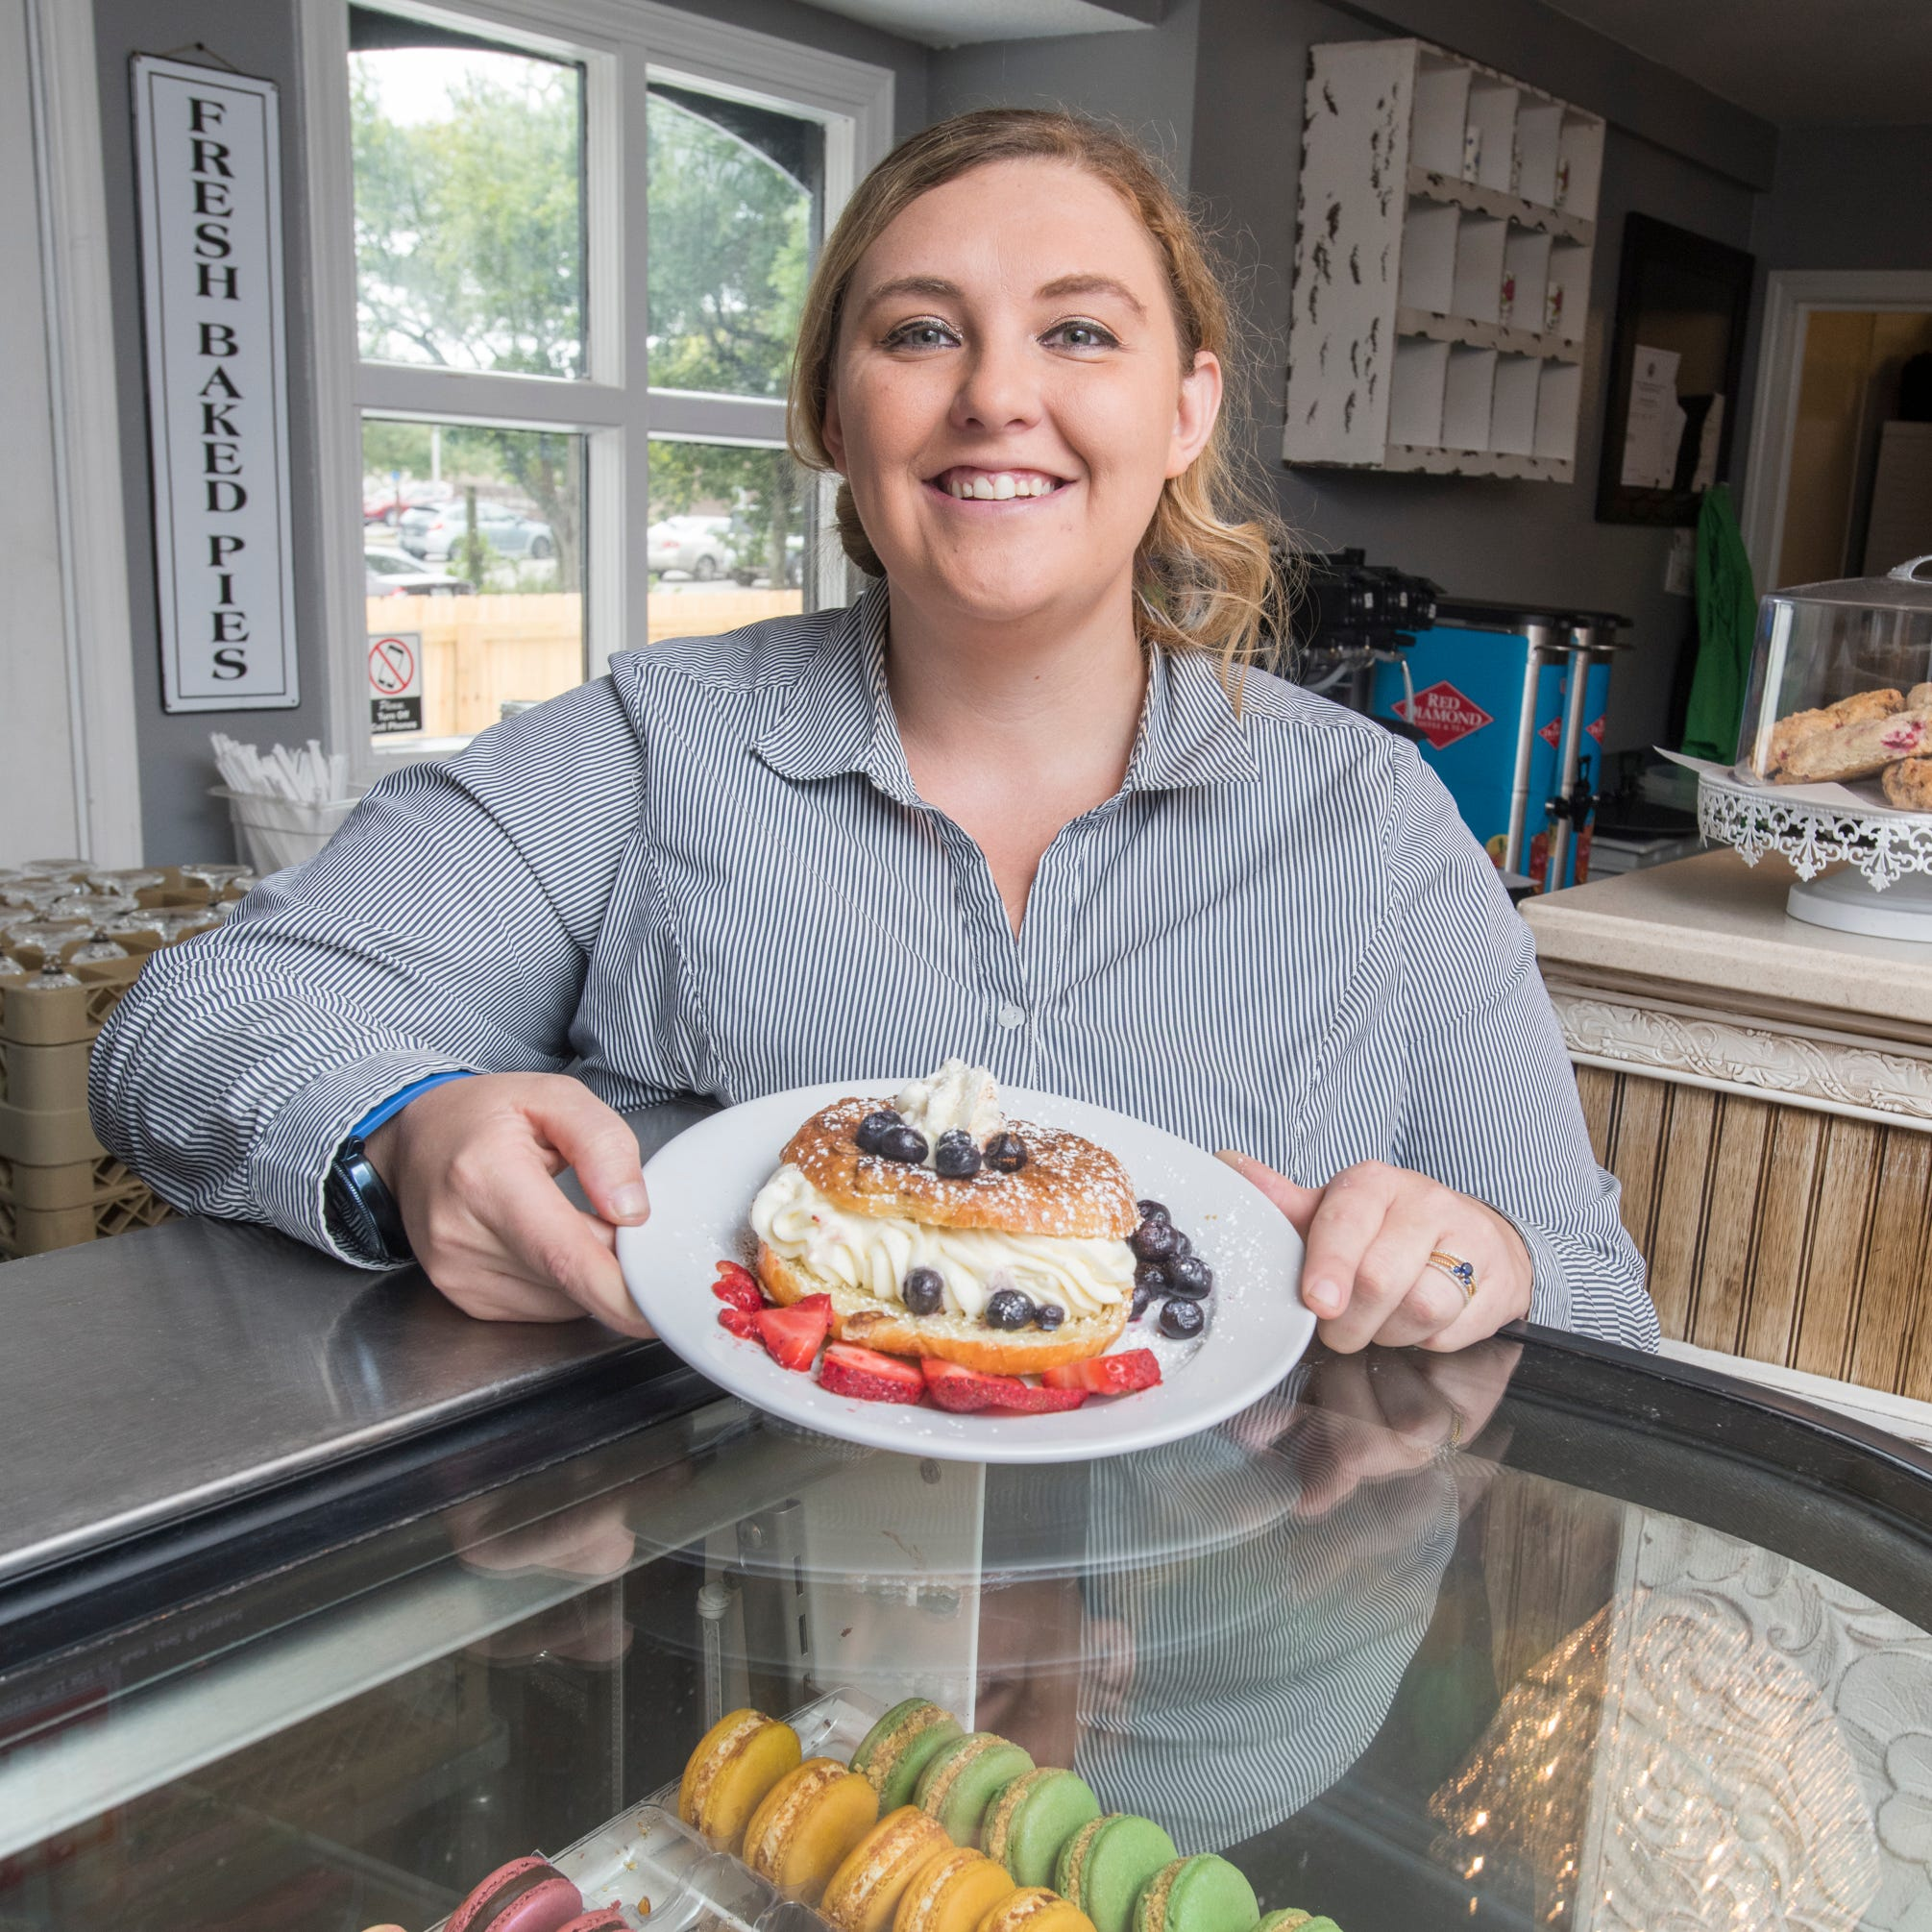 Adonna's Cafe & Bakery reopens on Garden Street with event space, tea room and more